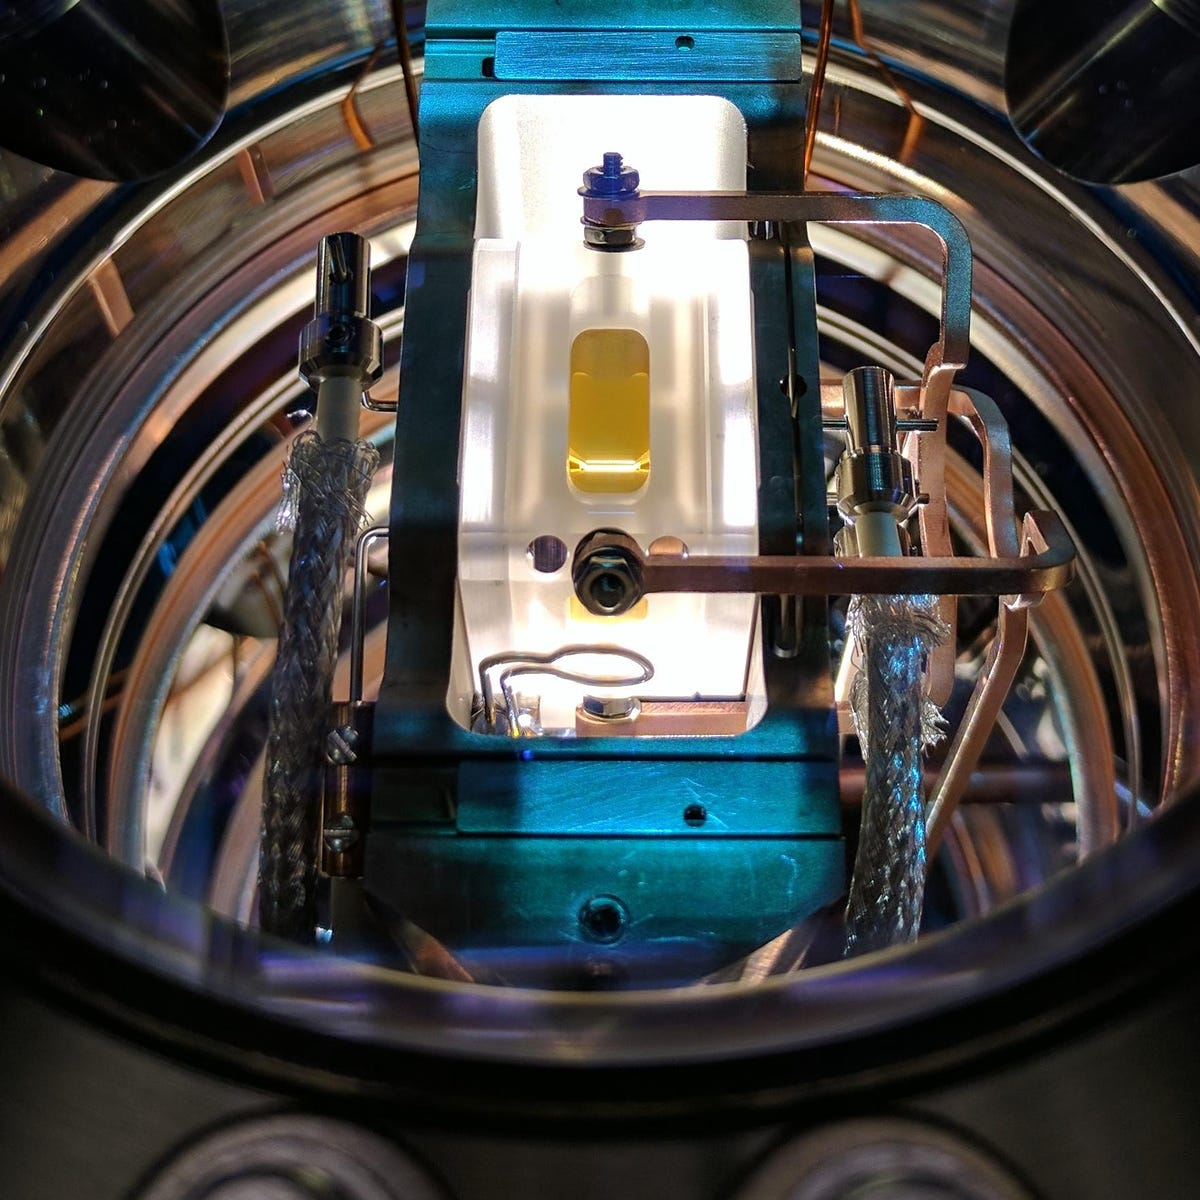 ion-trap-used-in-experiment-quantum-control-laboratory-university-of-sydney.jpg